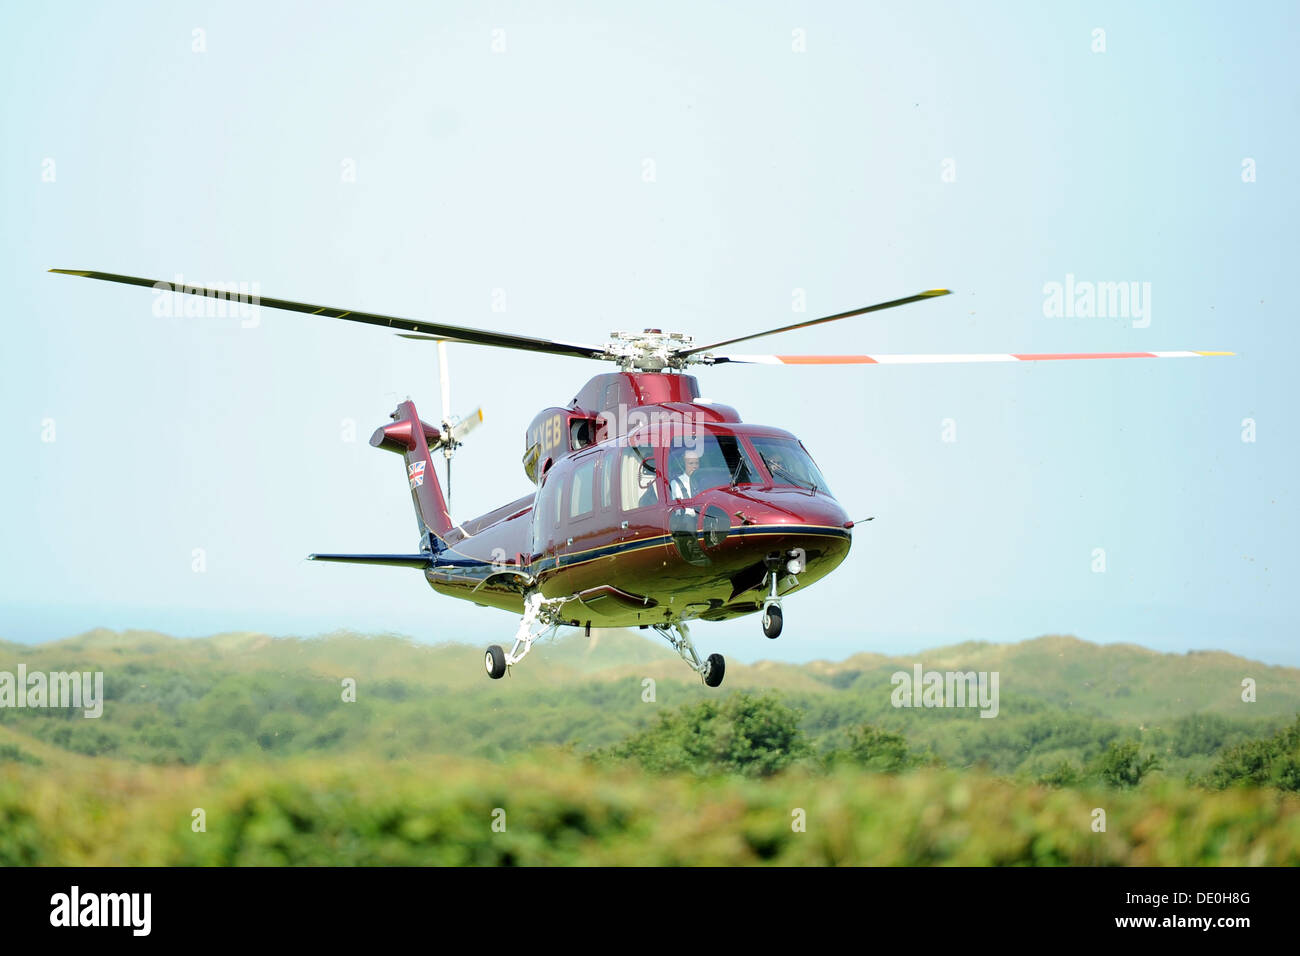 The royal family's helicopter also known as the Queen's Helicopter Flight (TQHF) G-XXEA - Stock Image